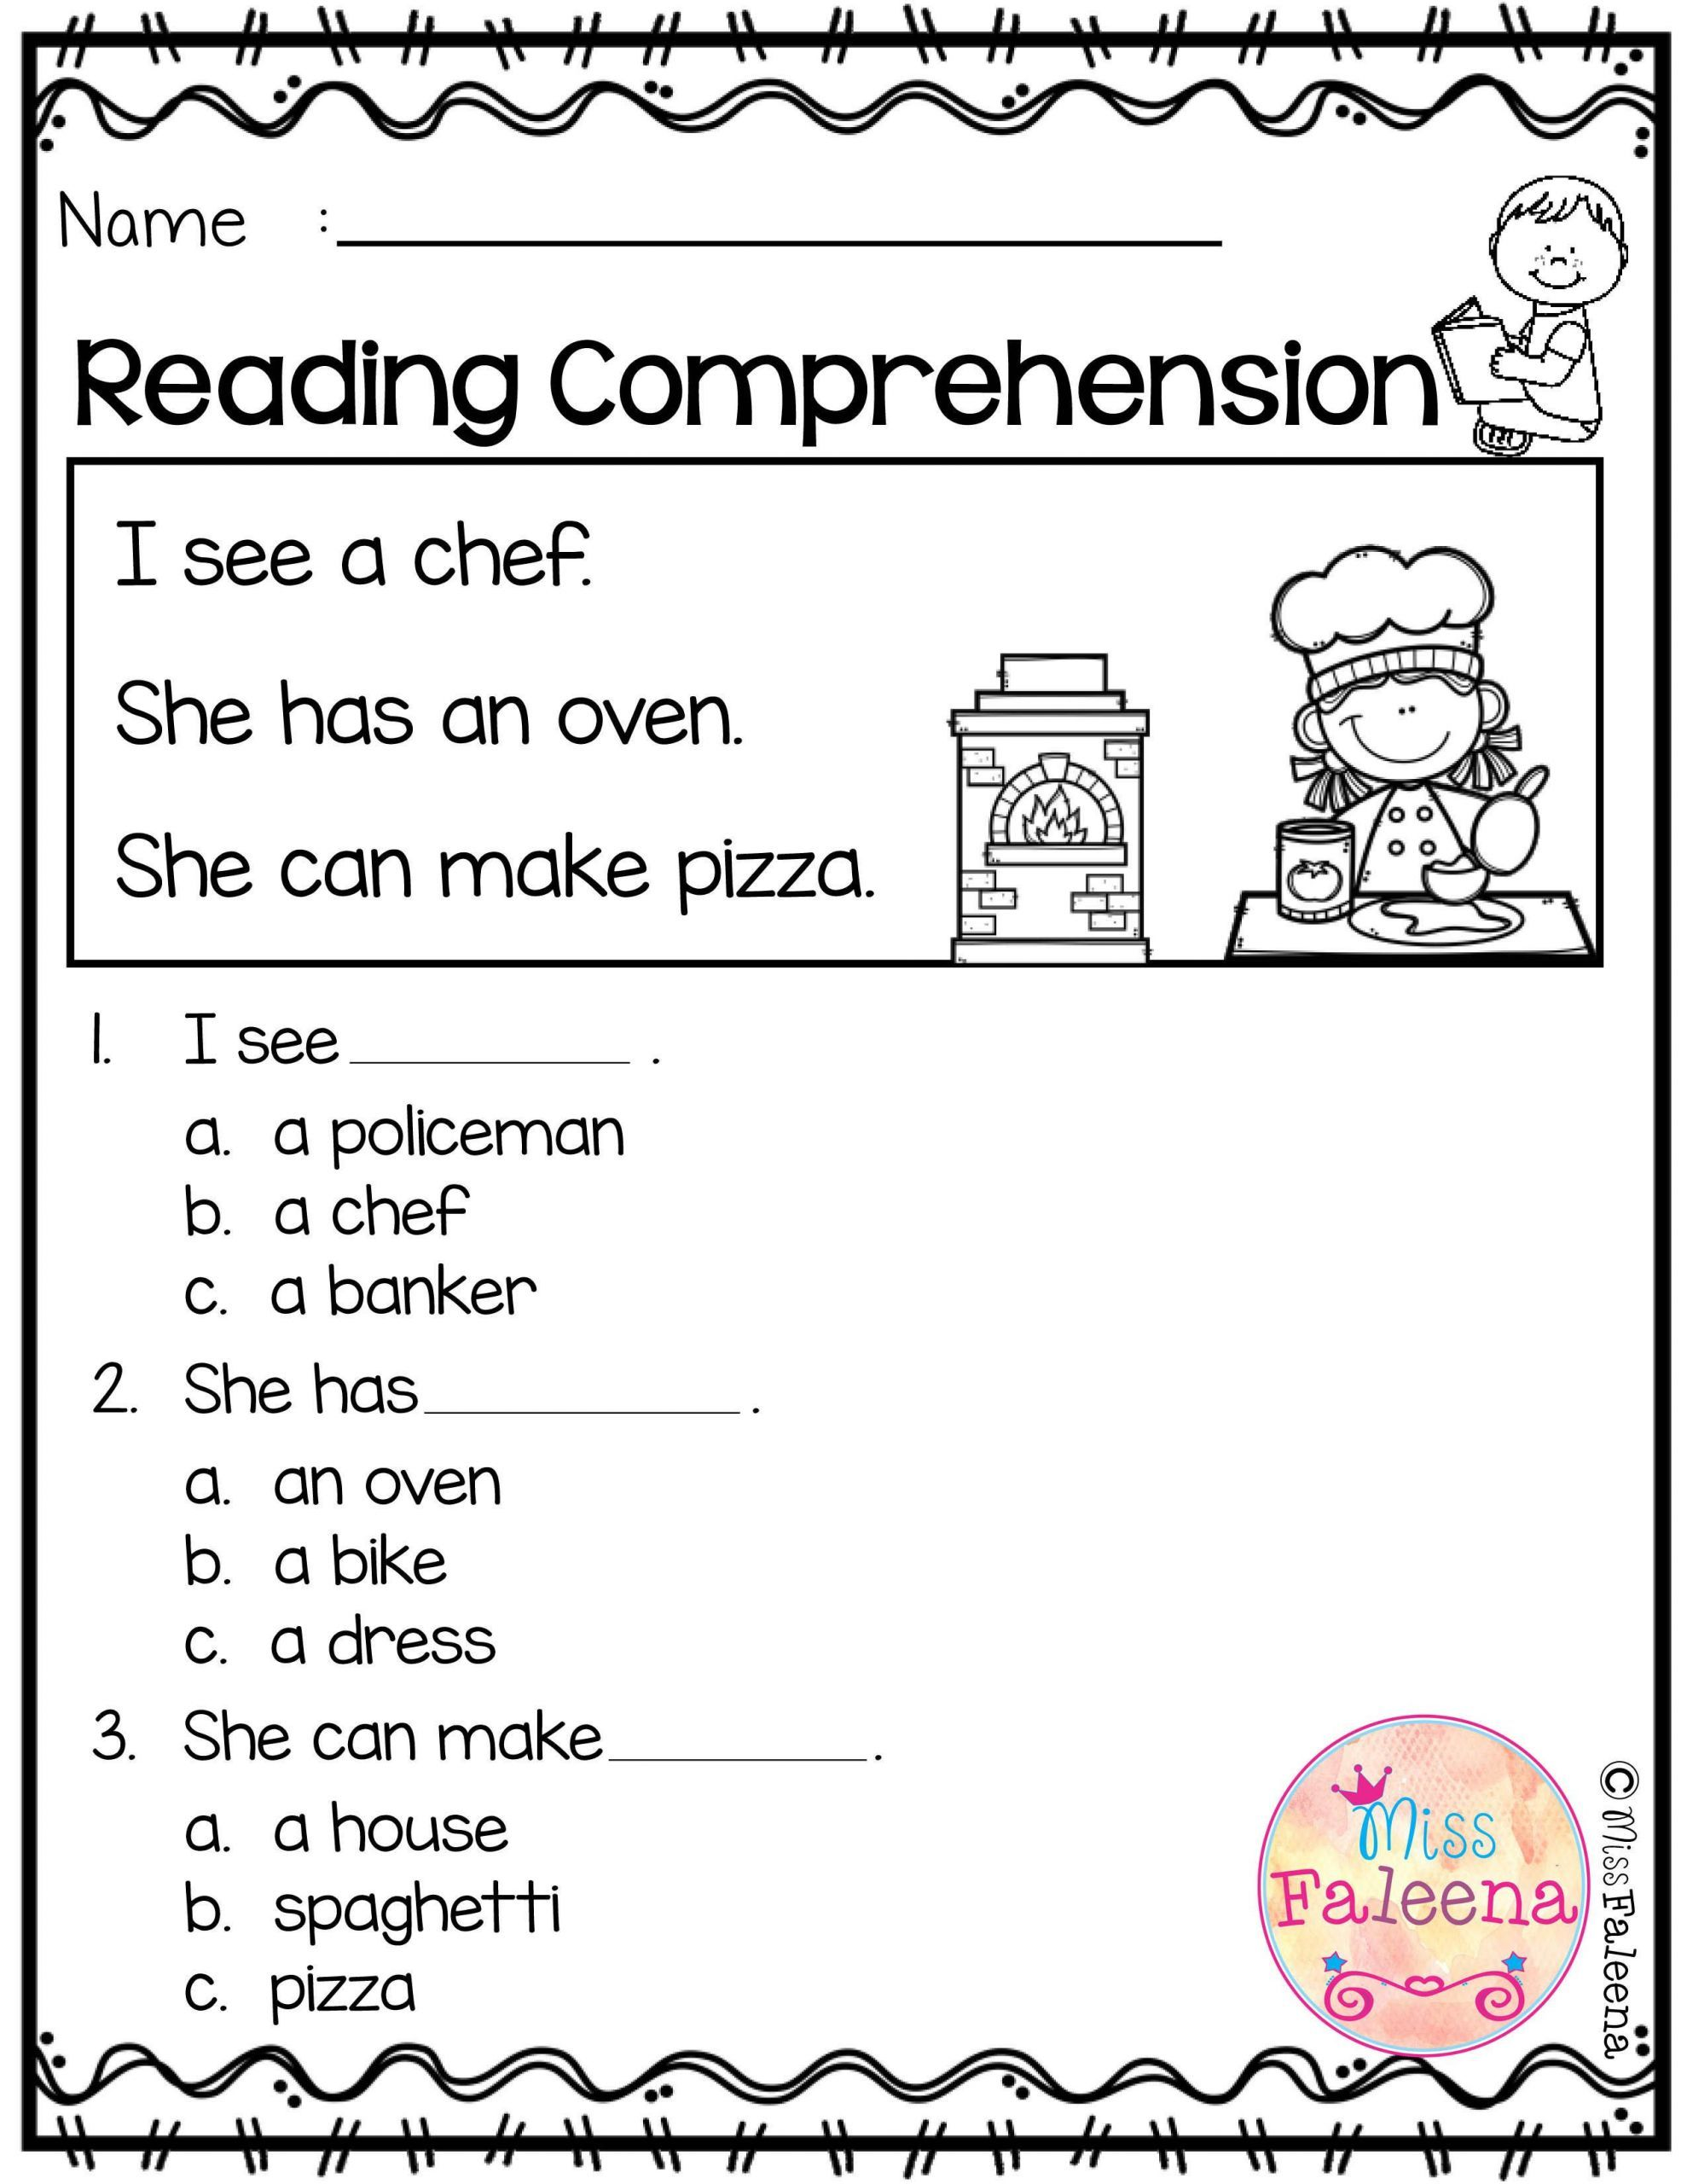 small resolution of 5 Free Math Worksheets Second Grade 2 Subtraction Subtract whole Tens From  whole … in 2020   Reading comprehension